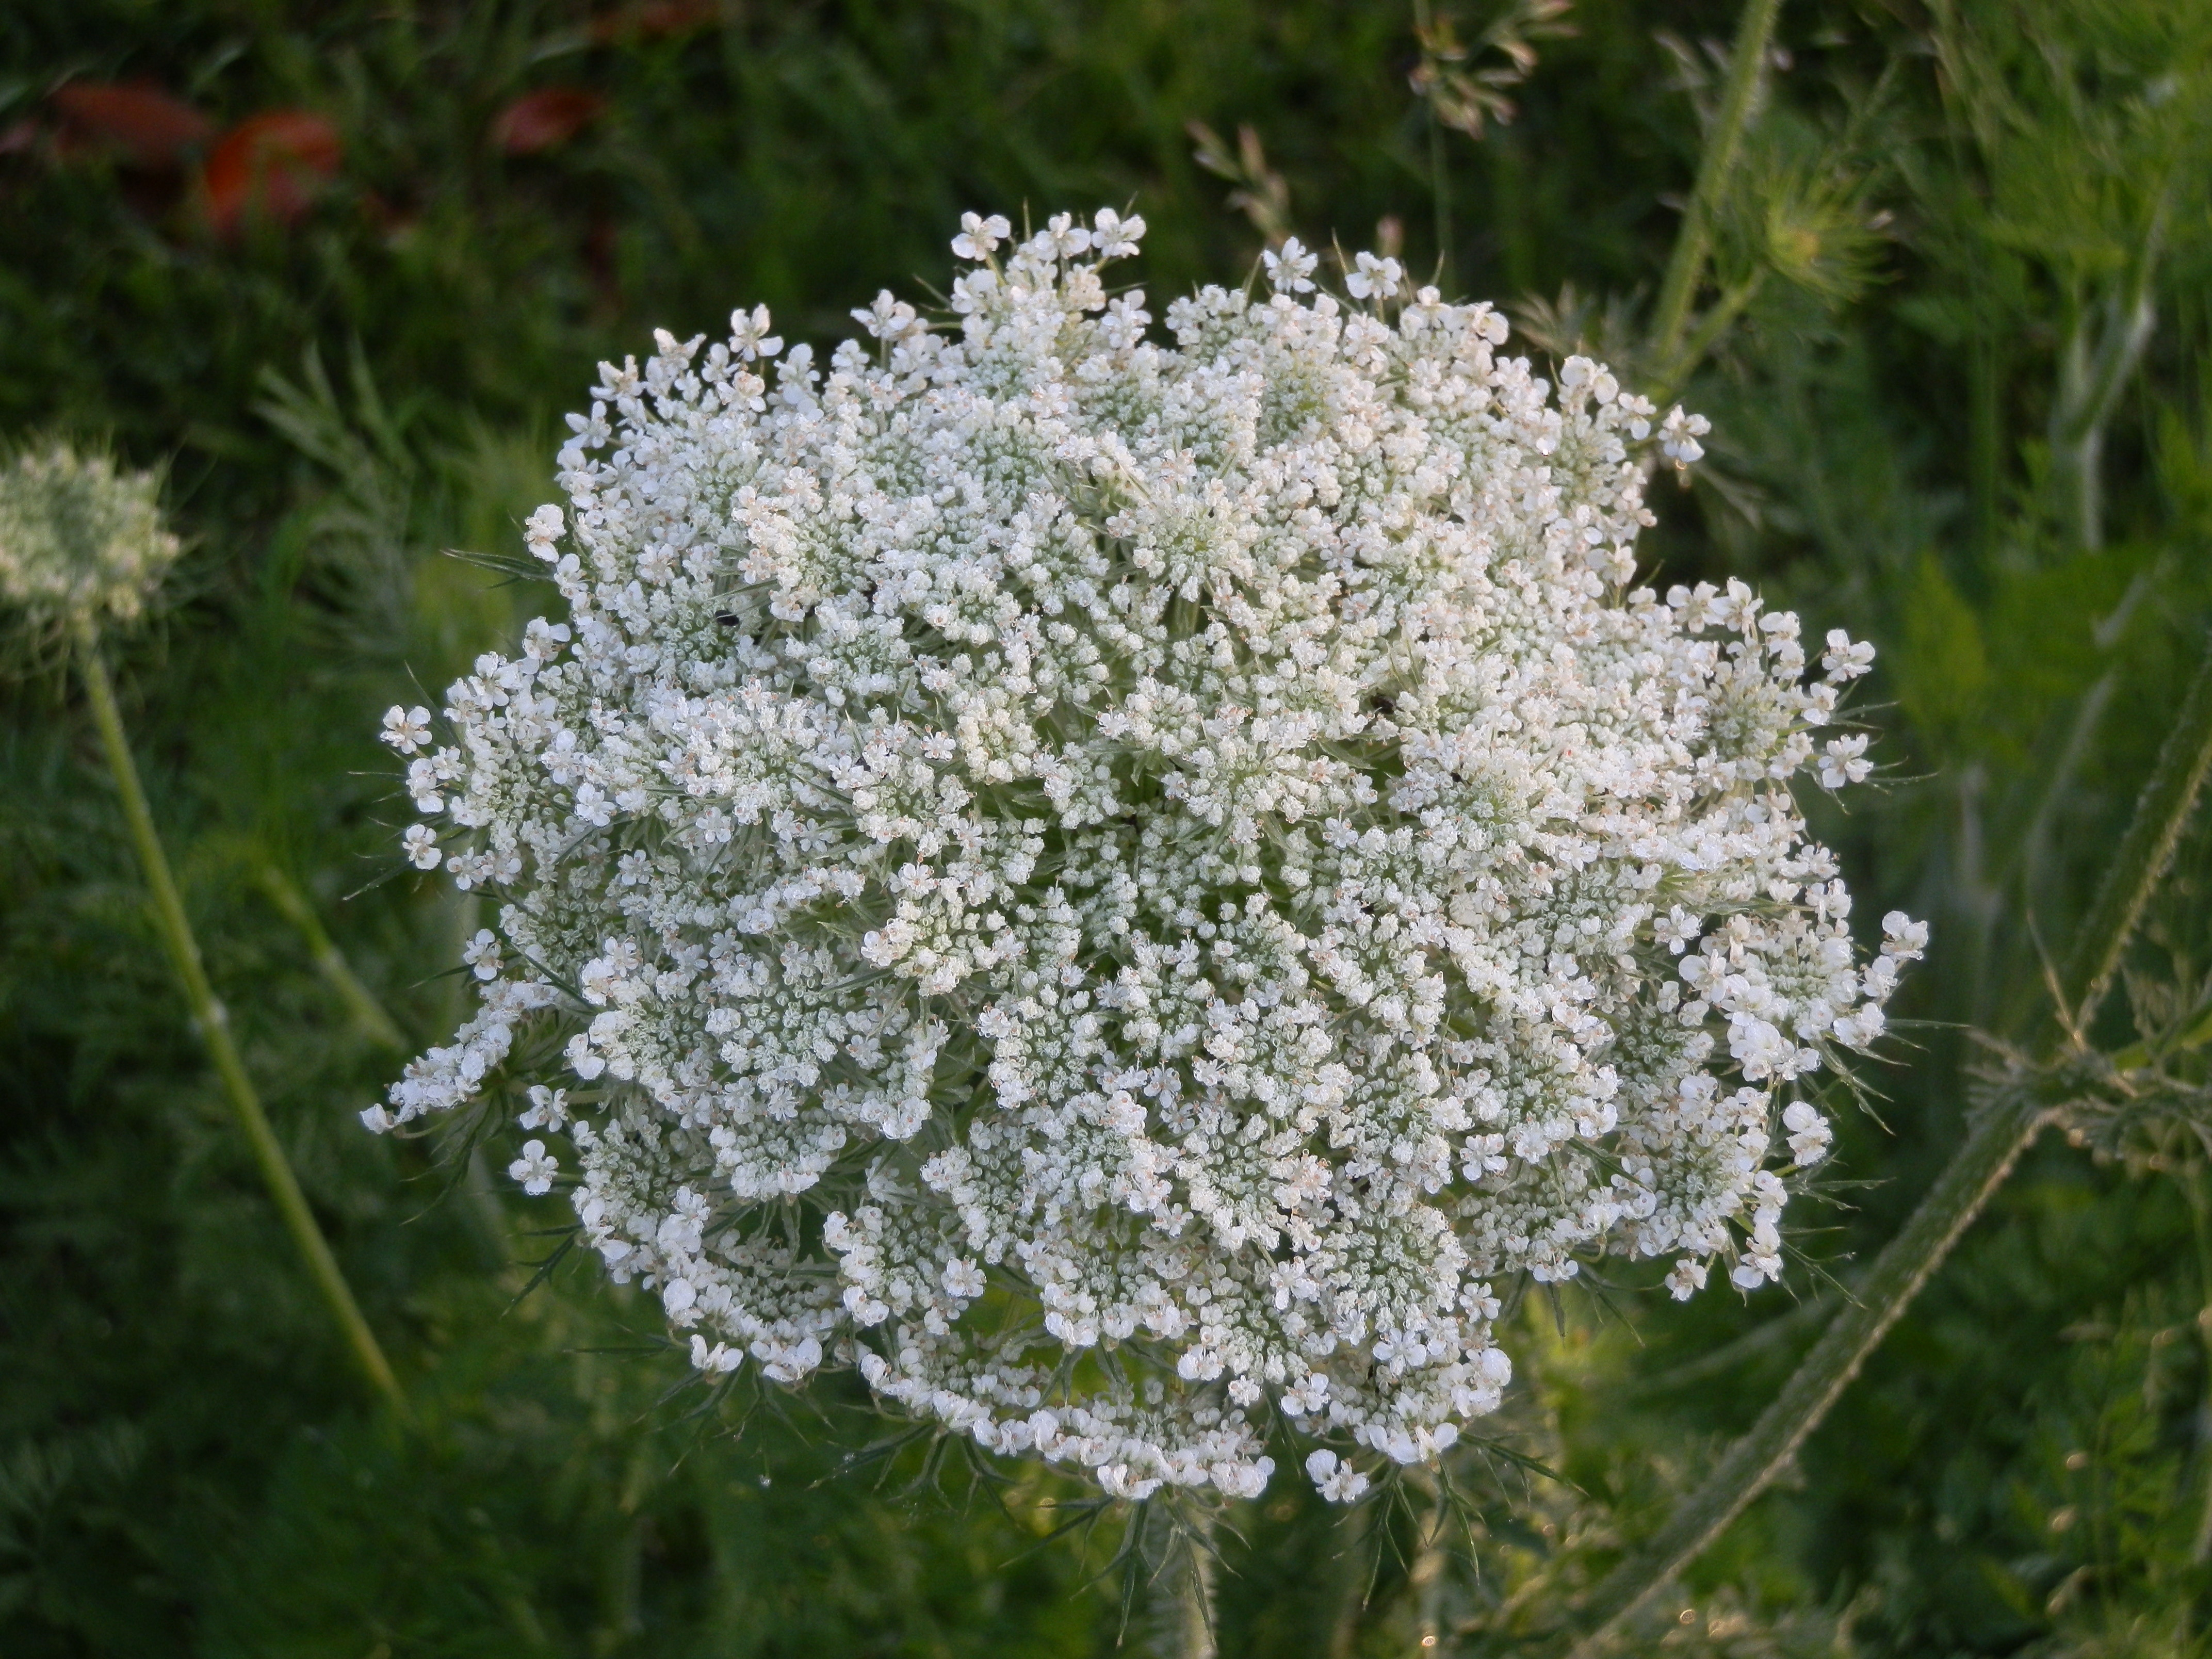 Queens lace flower